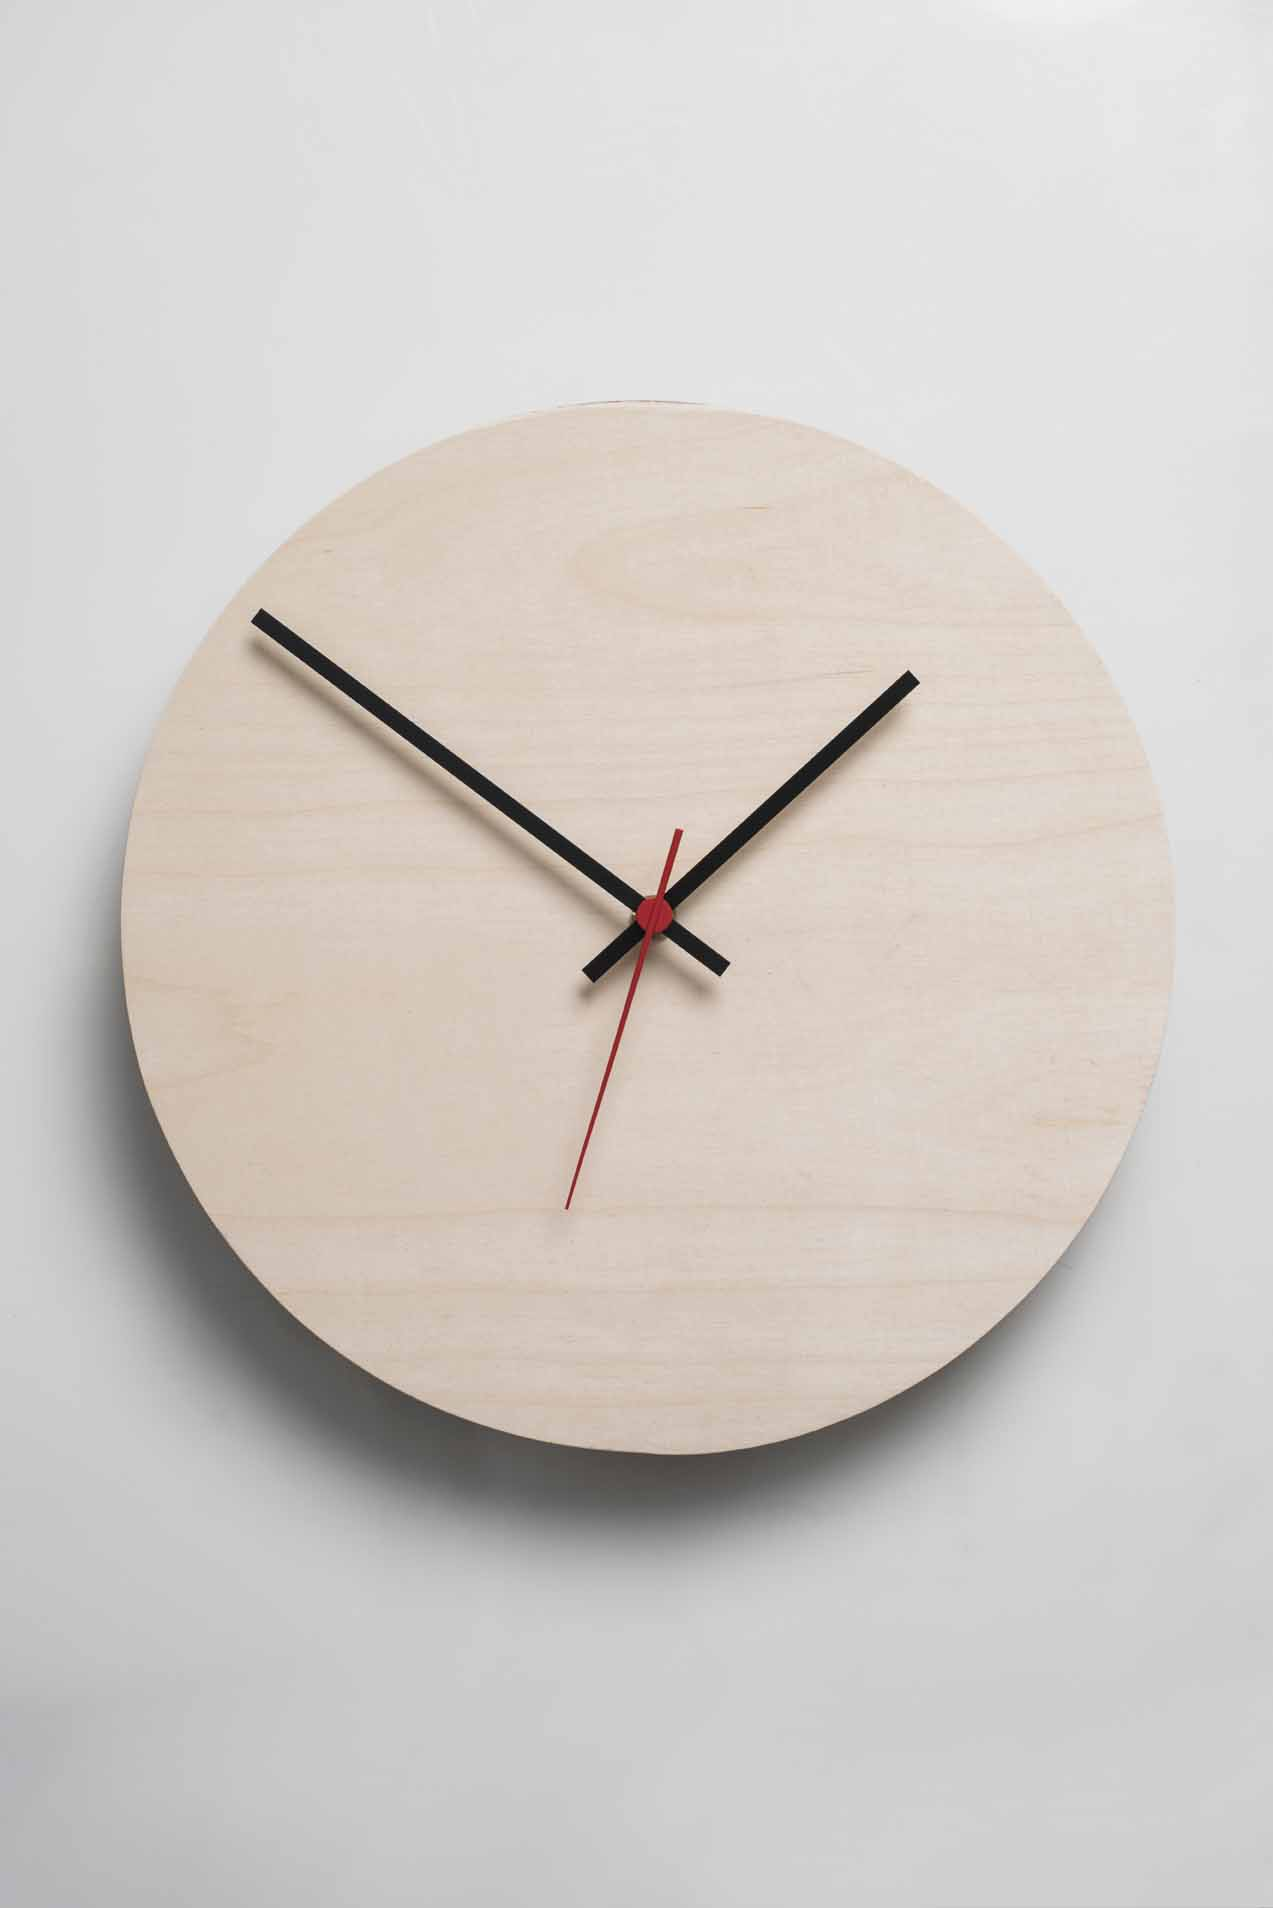 It's about time you considered redecorating, so get this fresh-looking 30cm diameter Native DecorRound Clockto inject a dose of minimalist aspect into your space. Pair it with a feature wall in red to match the third hand and keep your decor light and neutral.  Material:Northeast European Birch Plywood and Water Based Enamel Paint